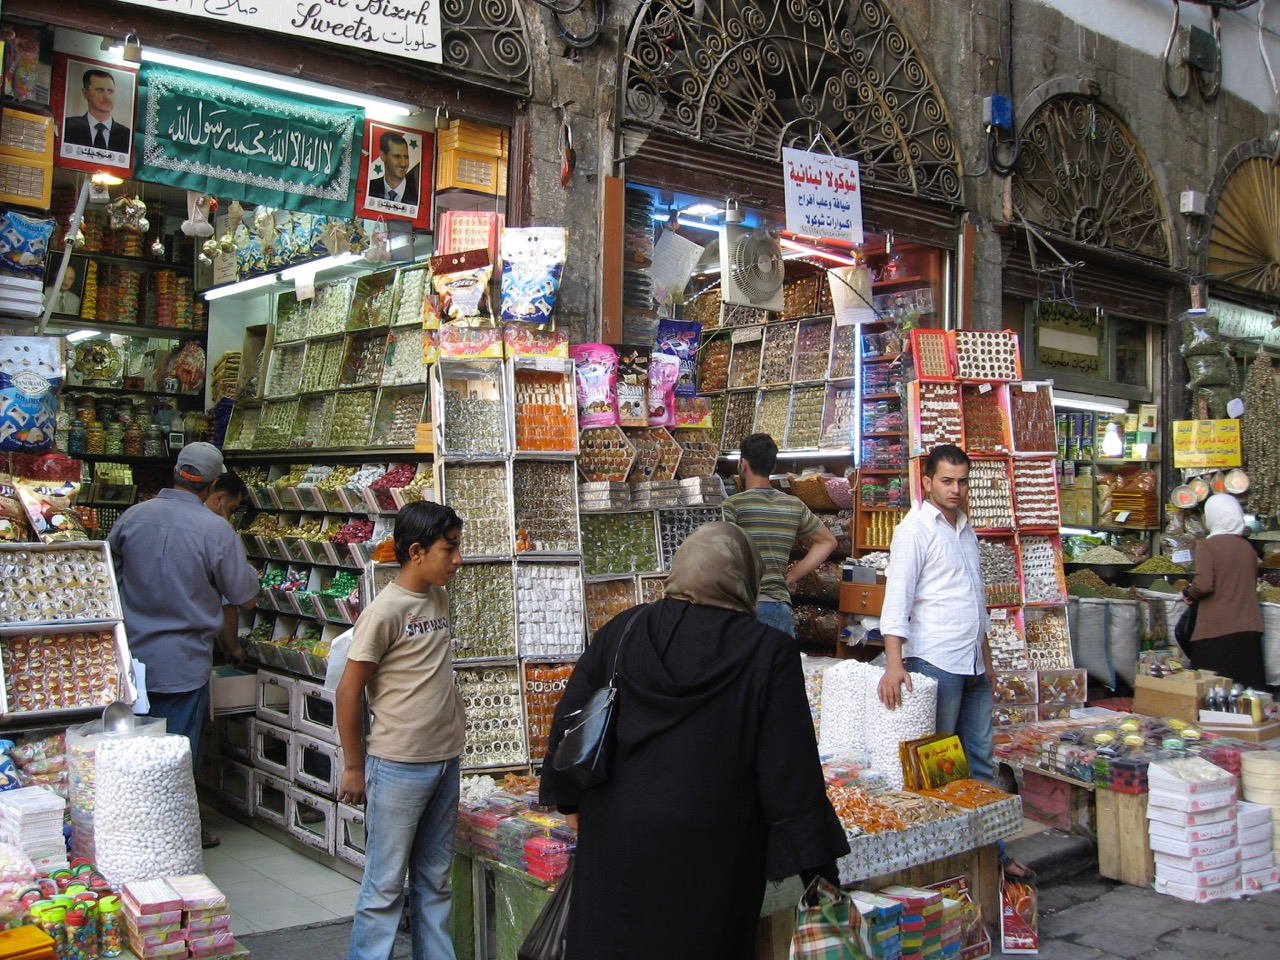 The souk in Aleppo, Syria, in 2007. Photo by Erica Gies.